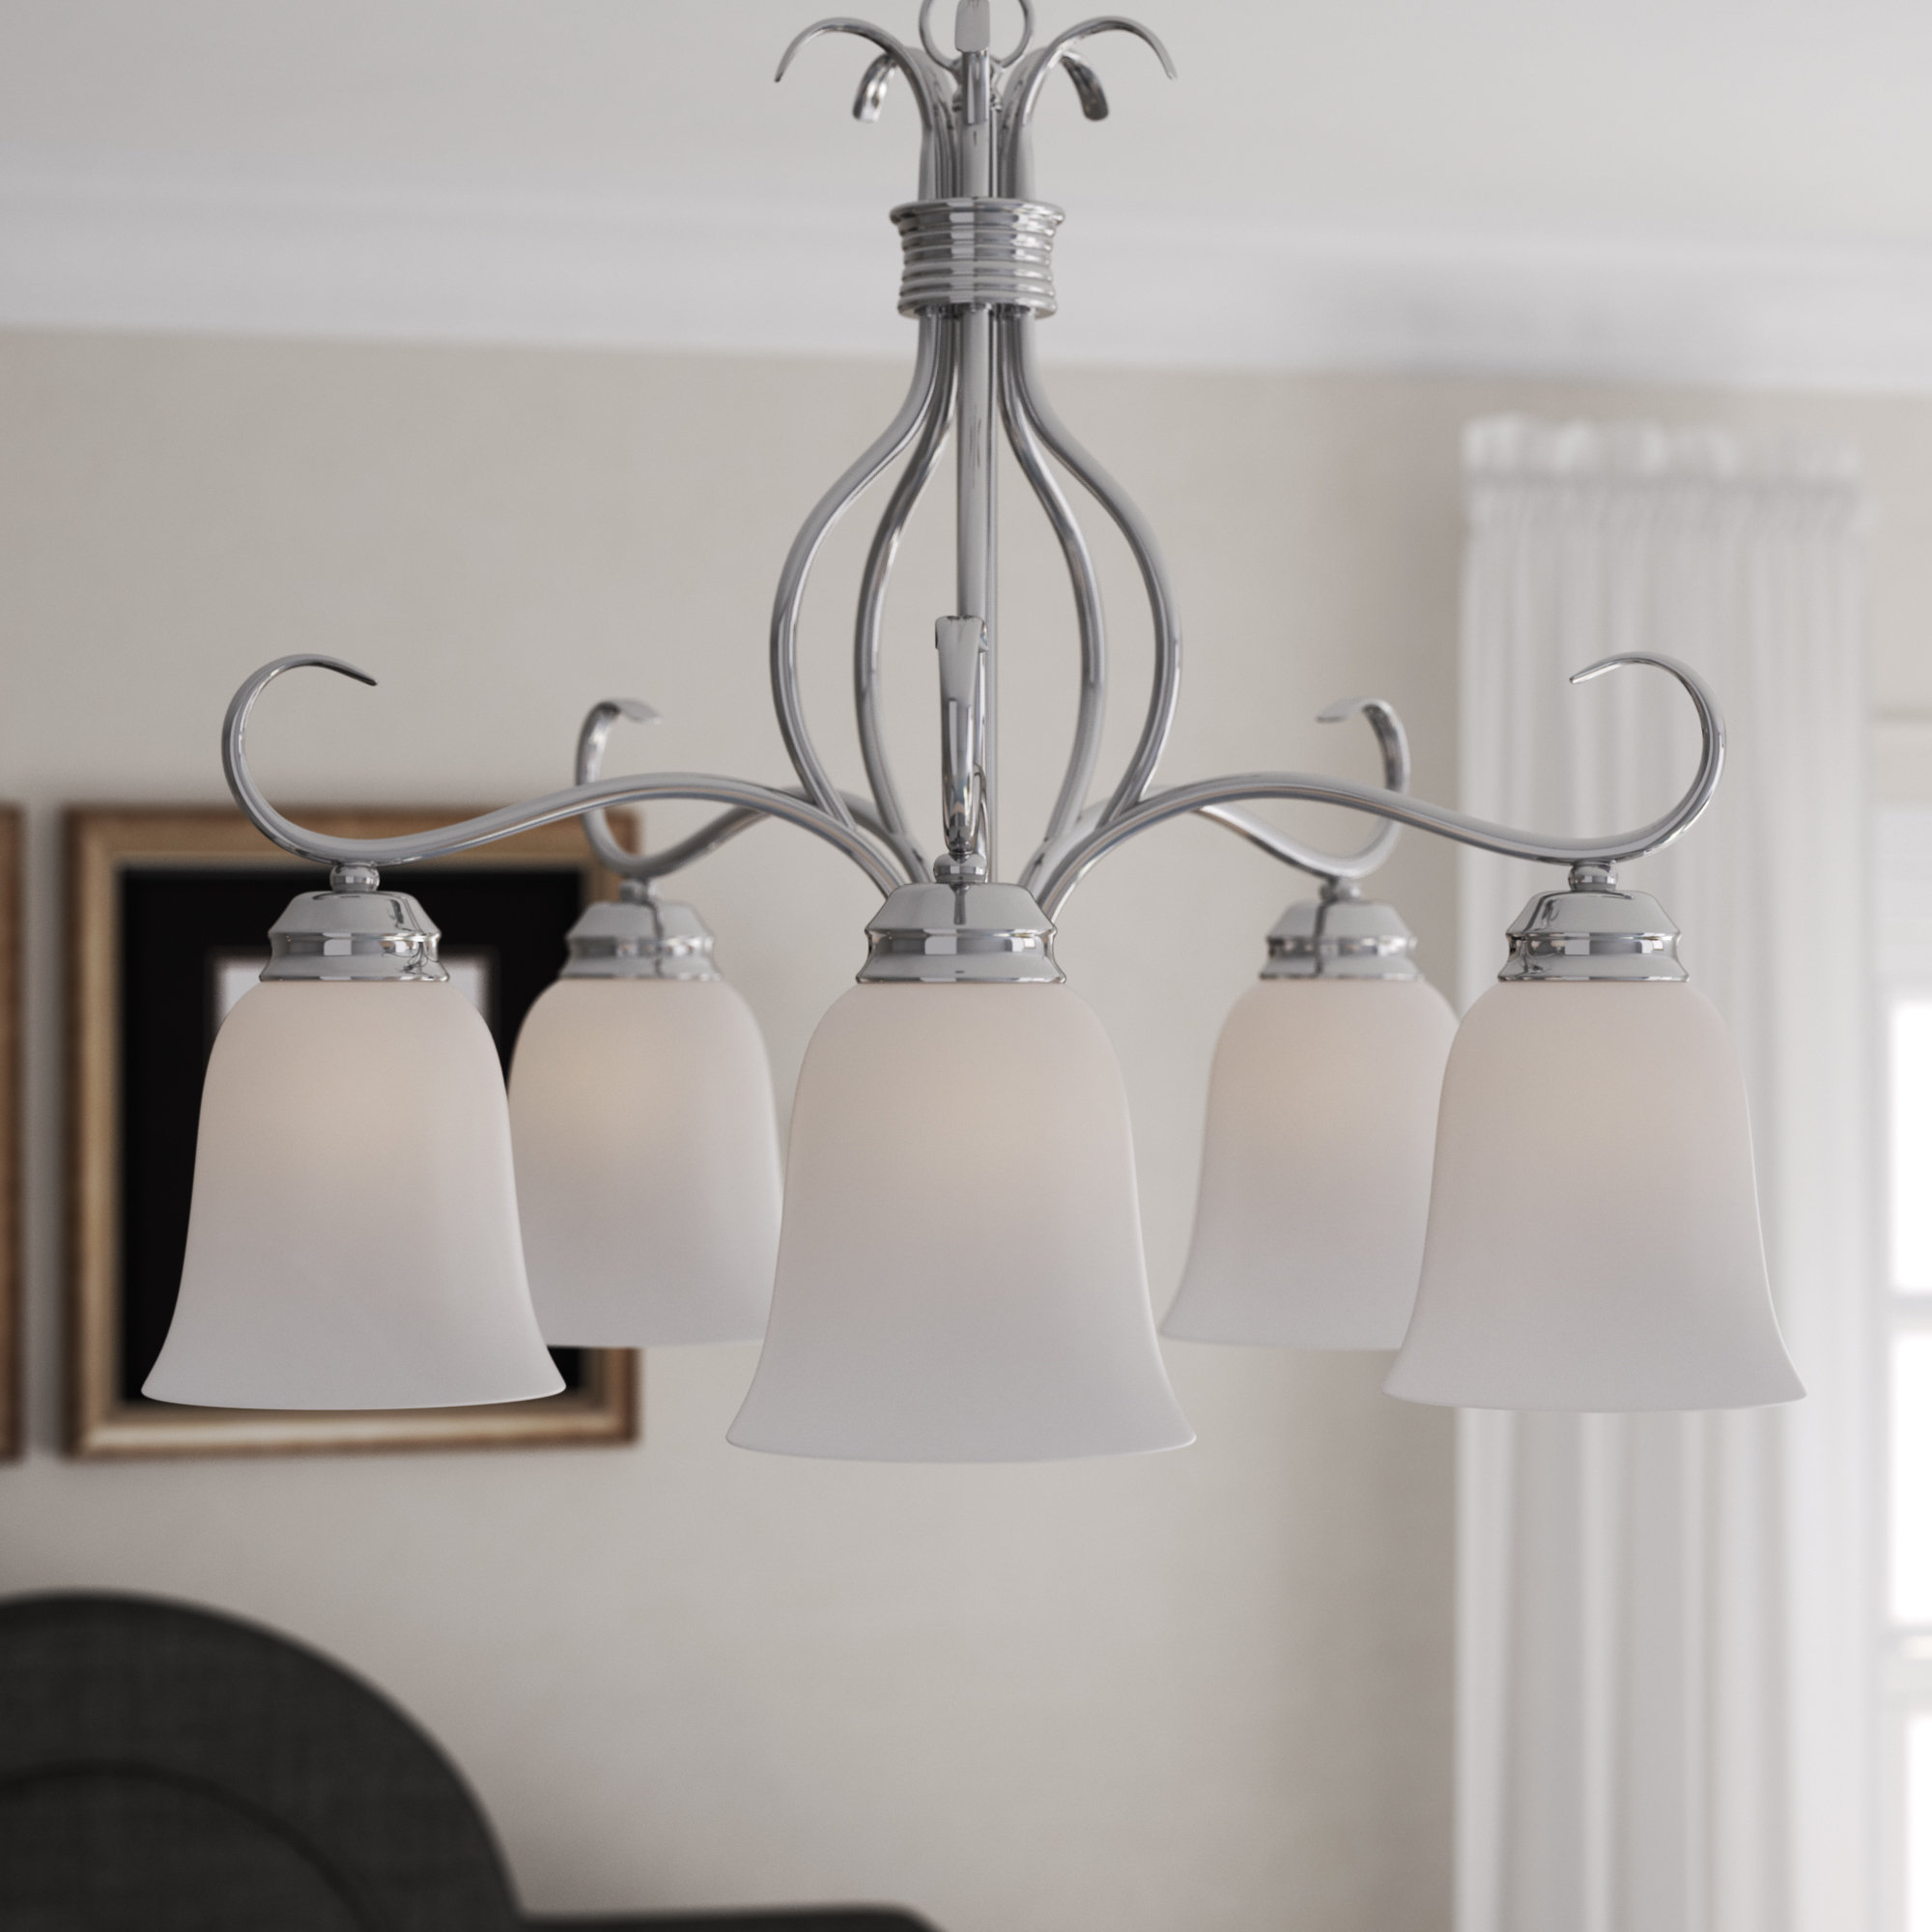 Charlton Home Wehr 5 Light Shaded Chandelier & Reviews Within Most Current Newent 5 Light Shaded Chandeliers (View 2 of 25)